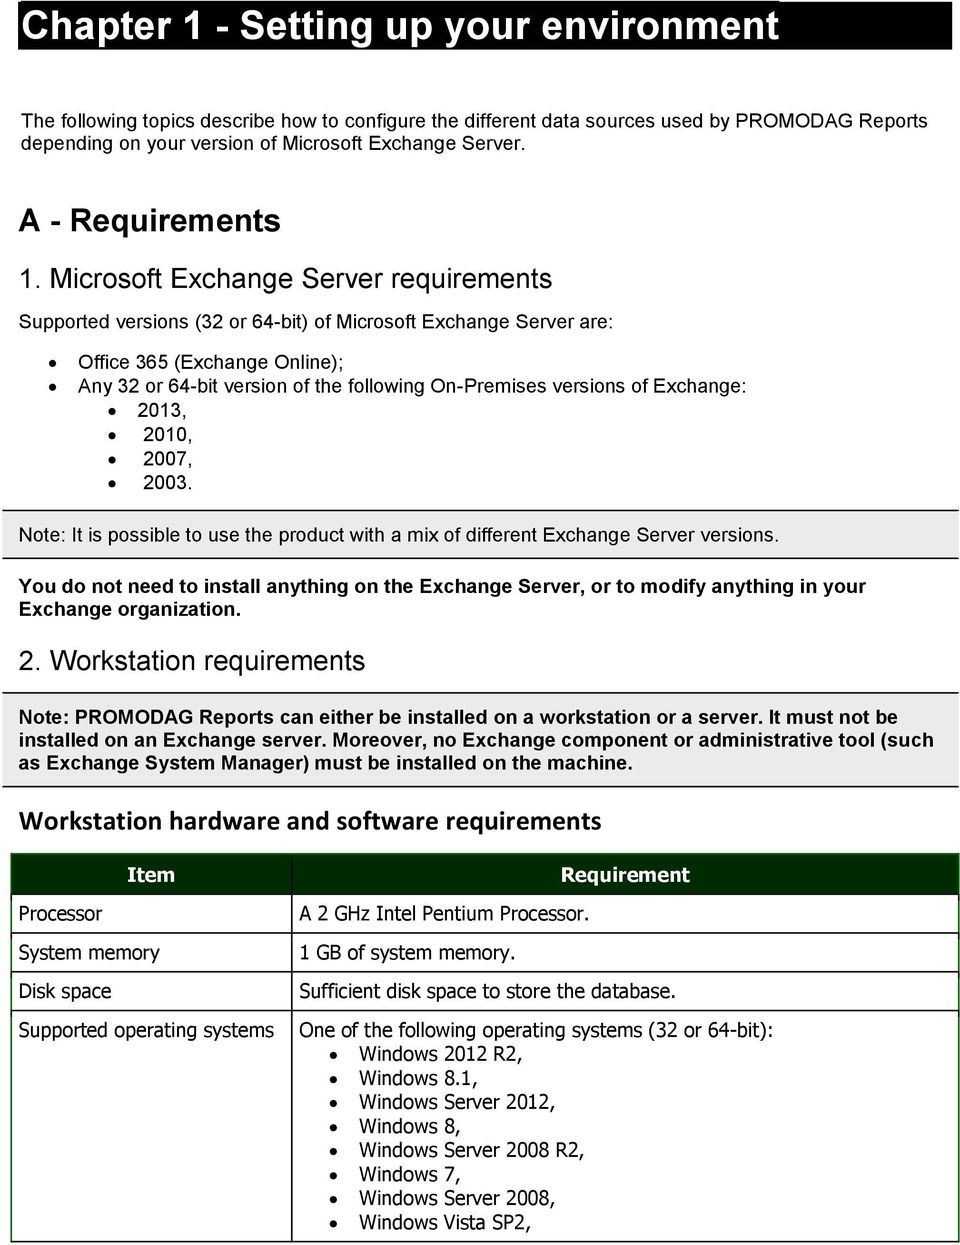 Microsoft Exchange Server requirements Supported versions (32 or 64-bit) of Microsoft Exchange Server are: Office 365 (Exchange Online); Any 32 or 64-bit version of the following On-Premises versions